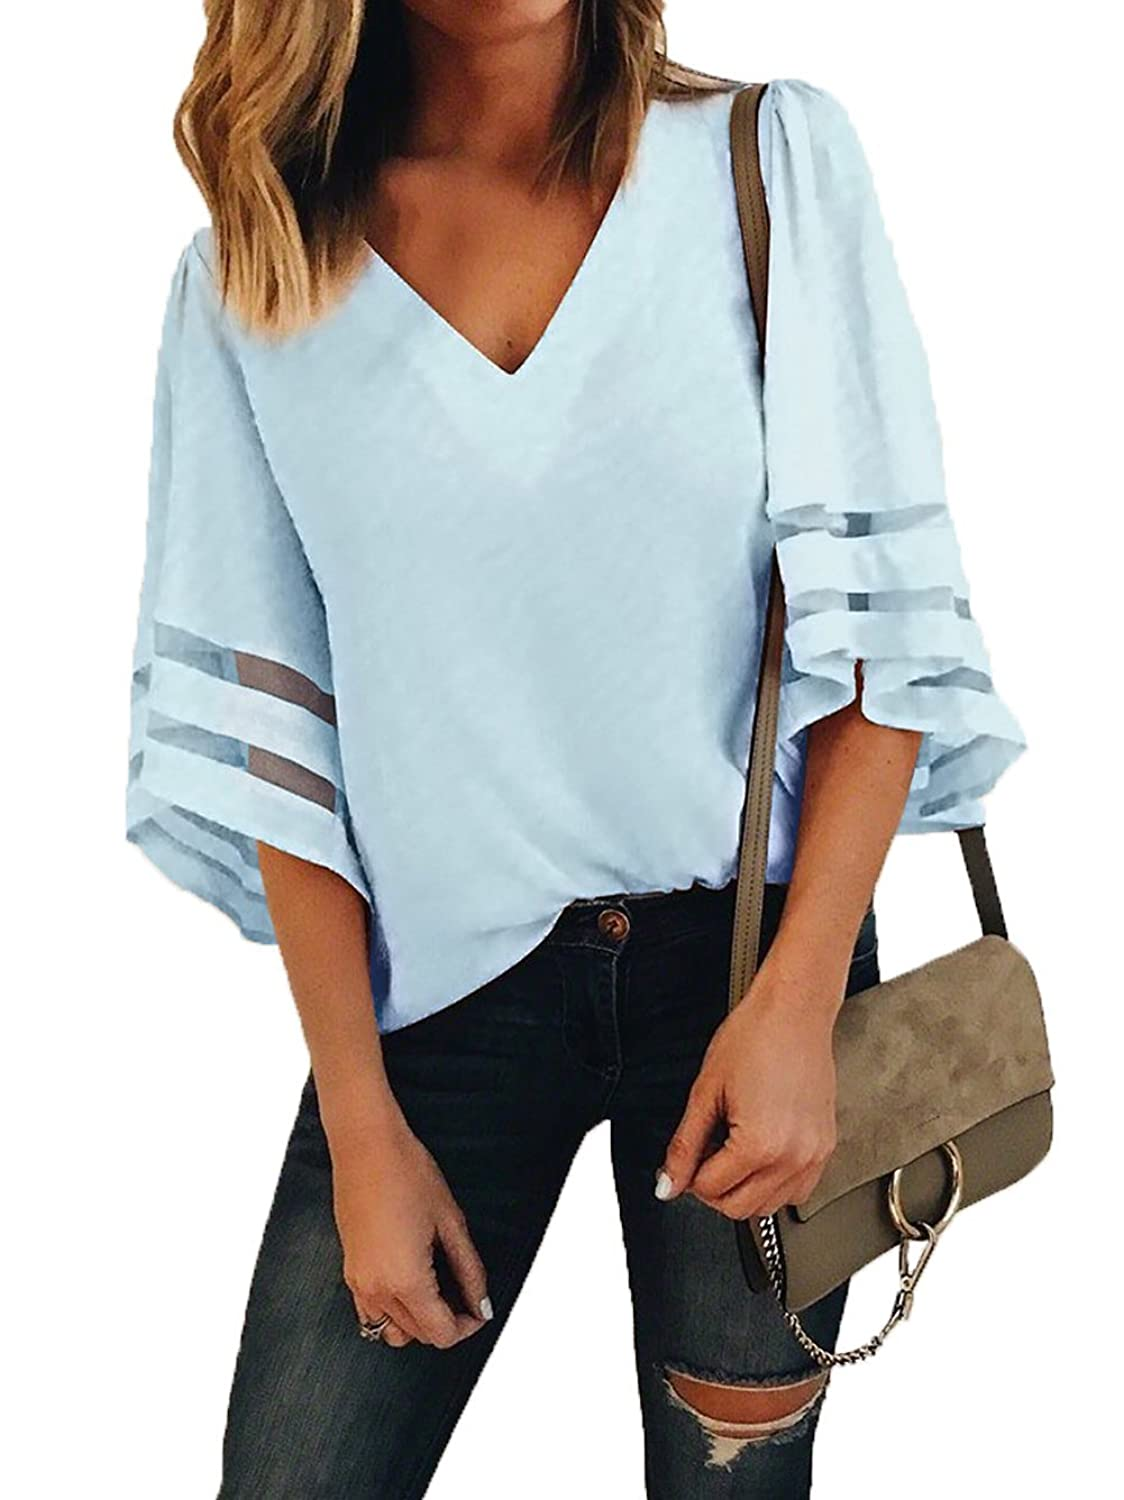 aaddb5ff This v neck shirt features 3/4 bell sleeve with mesh patchwork,loose fit  and sexy vneck style. Women Chiffon Blouse is Lightweight, Relaxed and  Comfortable ...